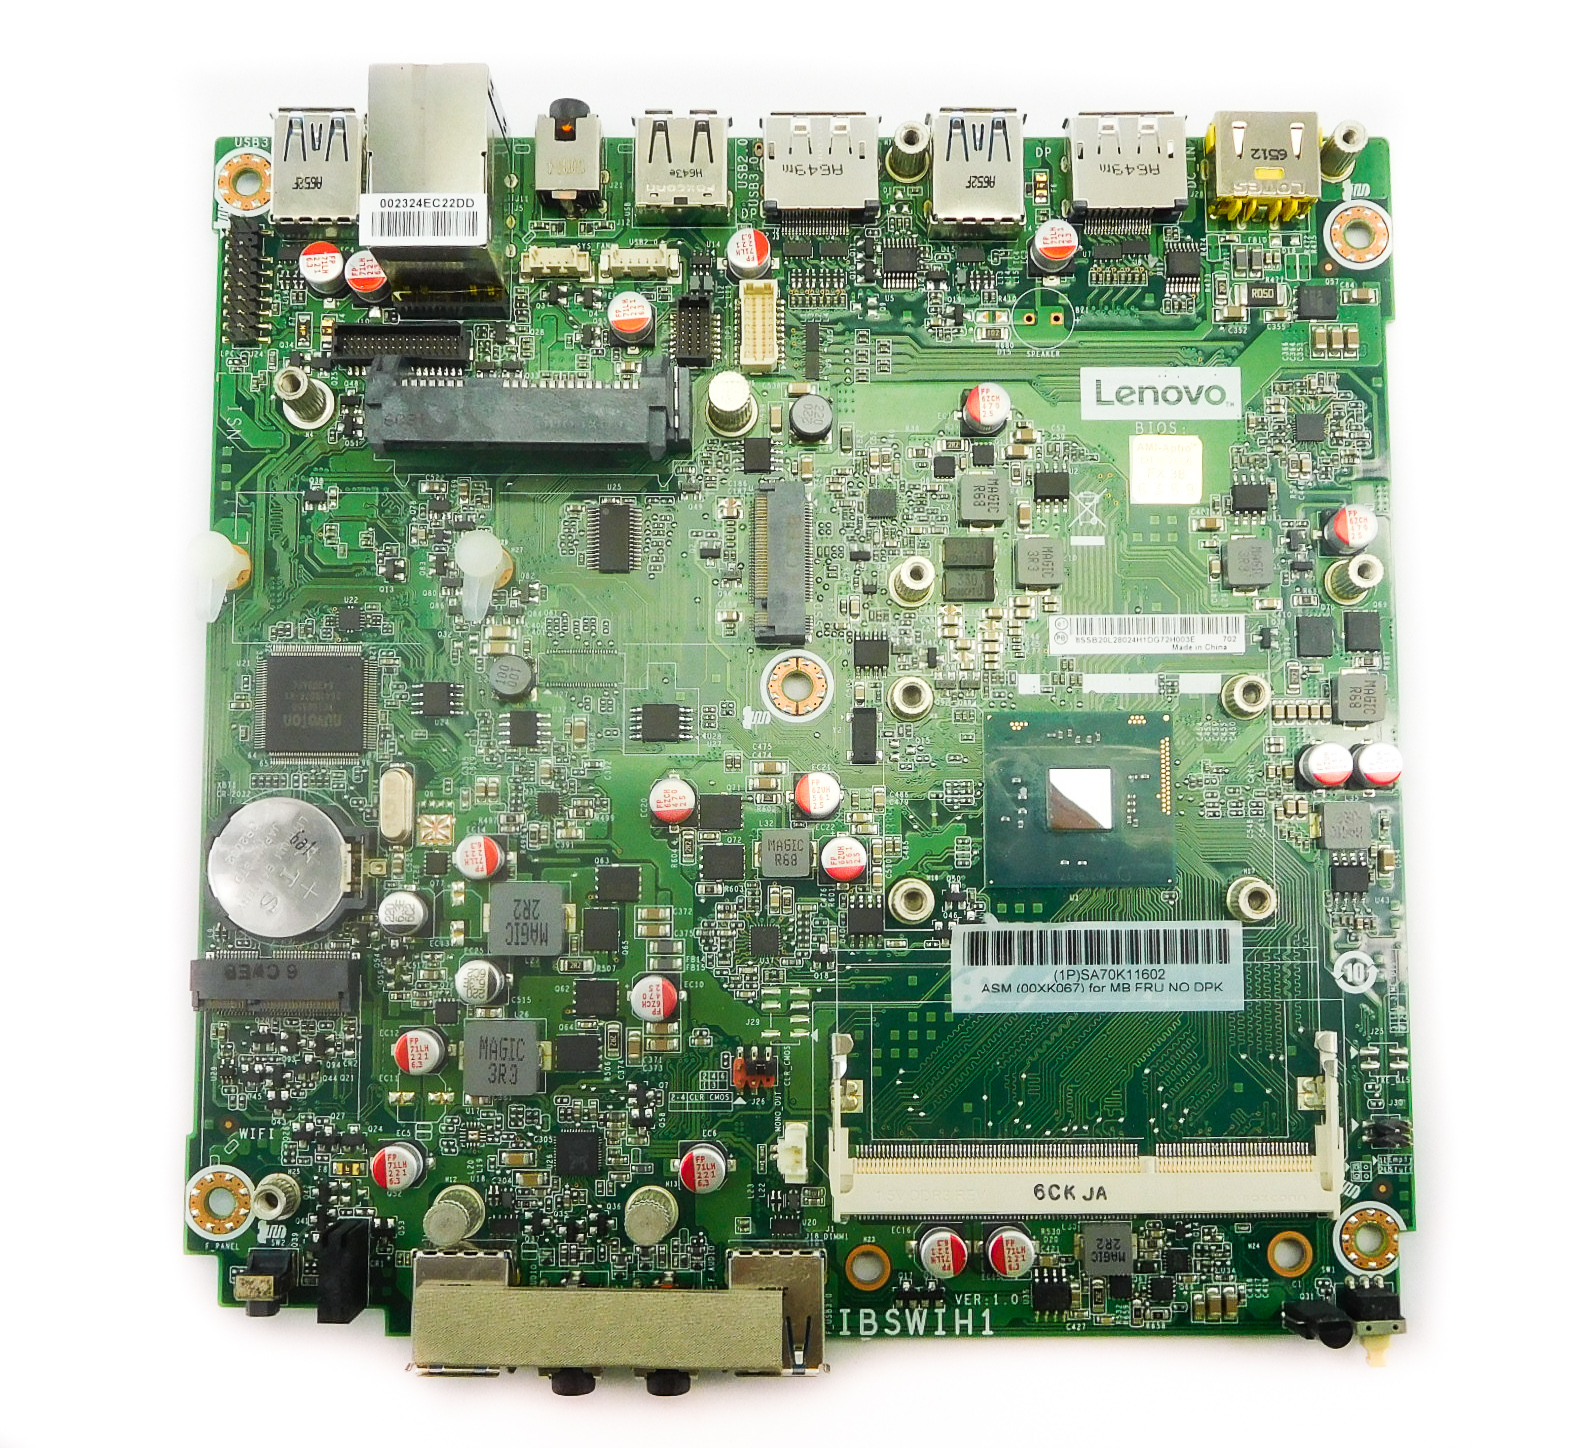 Lenovo 00XK067 ThinkCentre M600 Micro PC Motherboard IBSWIH1 /w Intel N3010 CPU